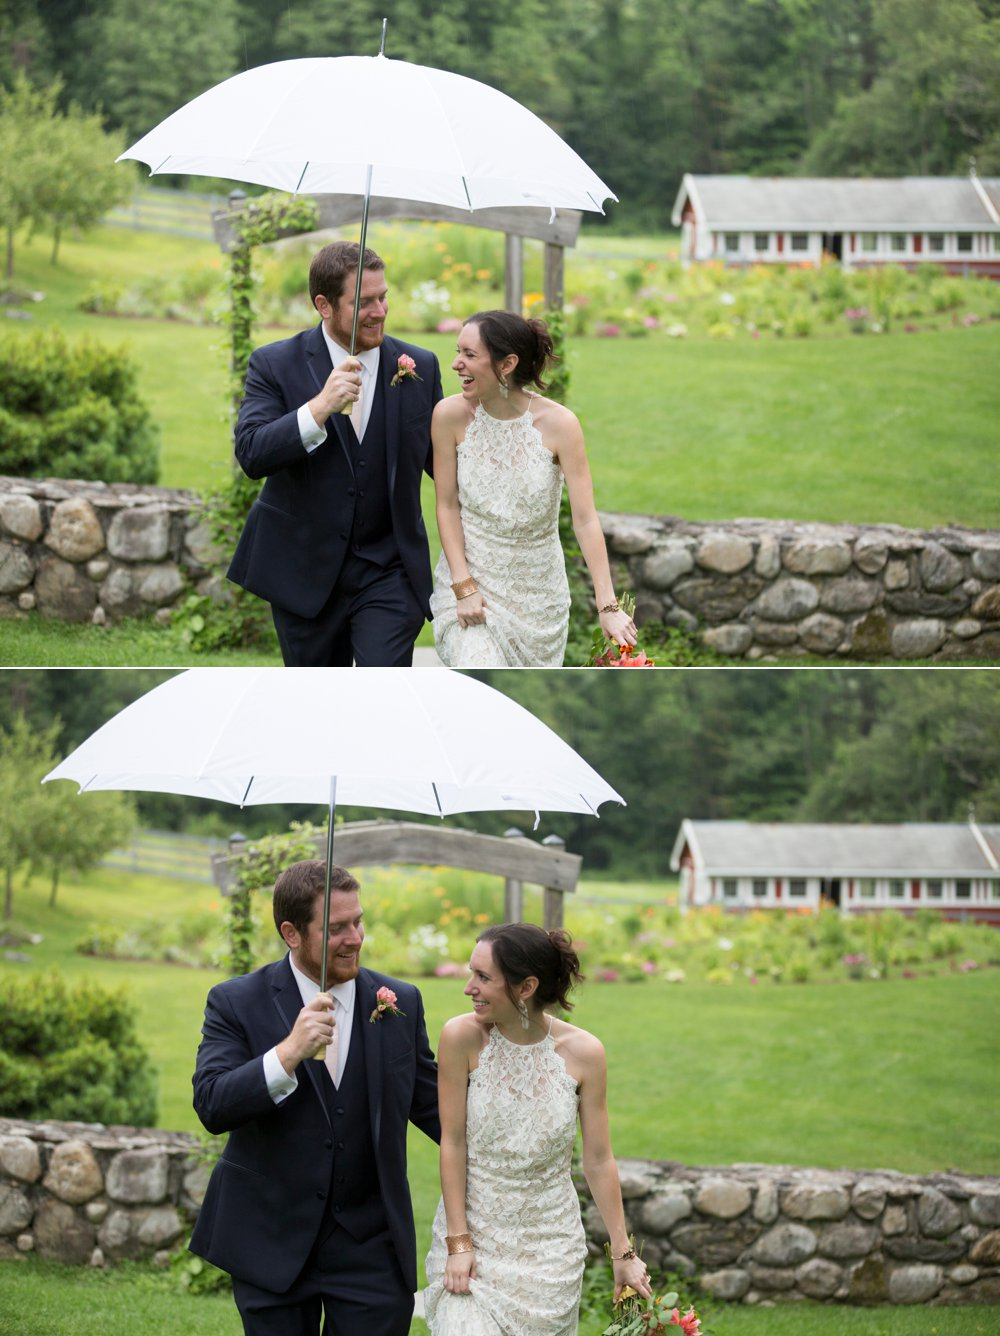 SomerbyJonesPhotography_WestMountainInnWedding_WestMountainInn_RusticVermontWedding_0035.jpg